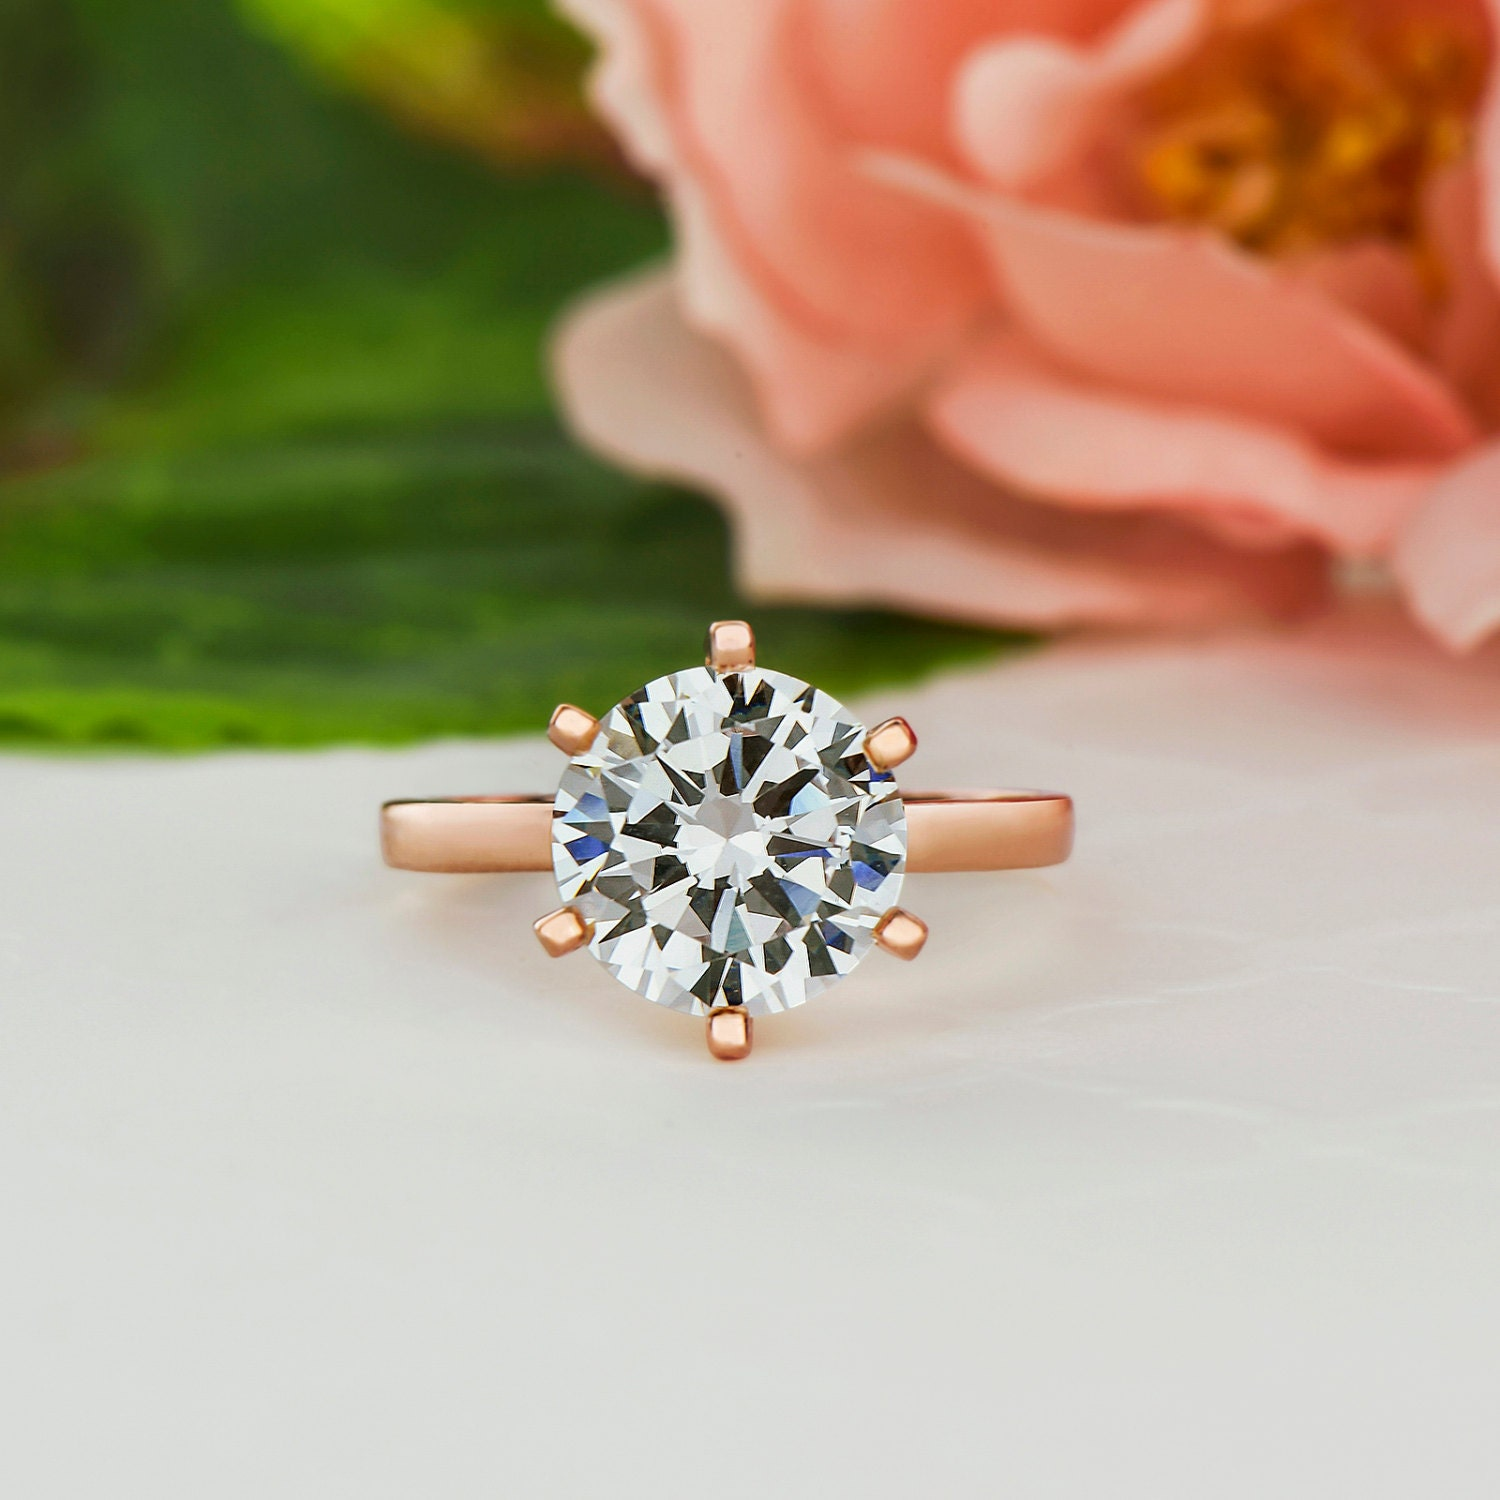 3 ct 6 Prong Engagement Ring Solitaire Ring Man Made Diamond